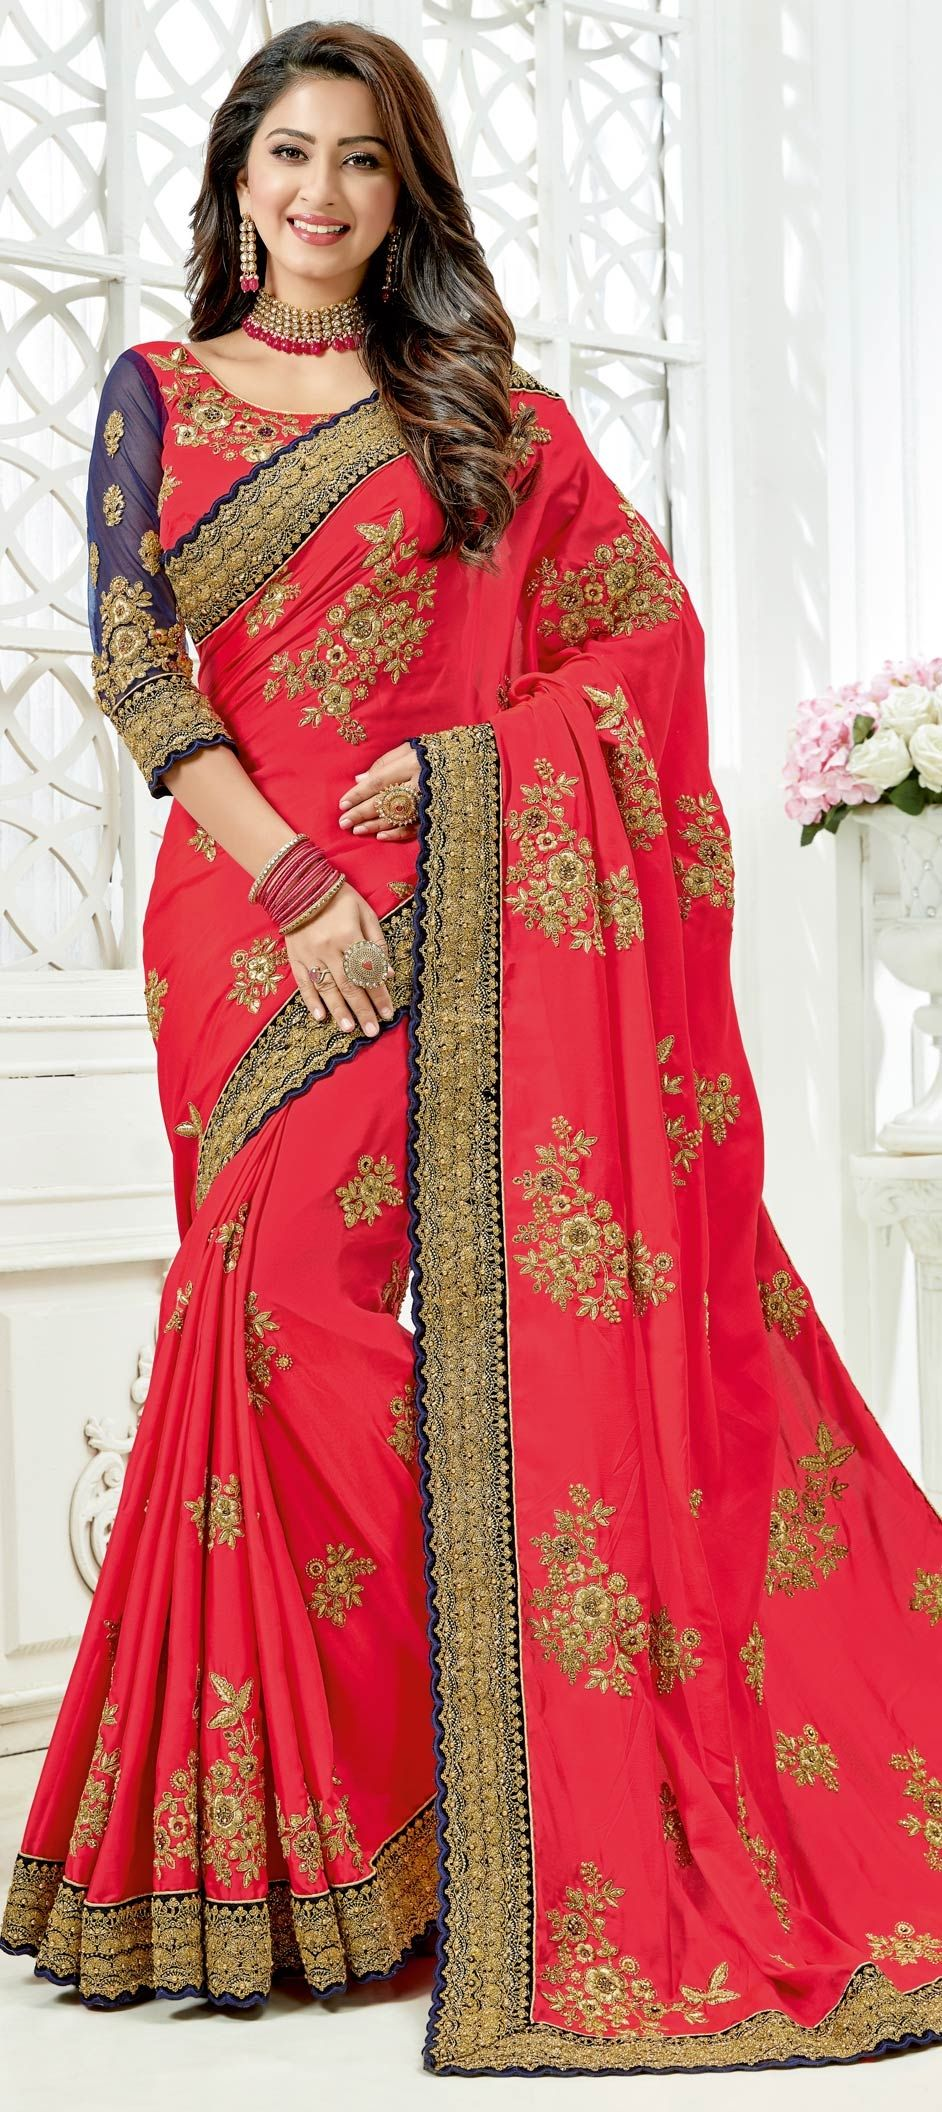 447bf5dbeca017 1553611: Party Wear, Reception, Traditional Pink and Majenta color ...